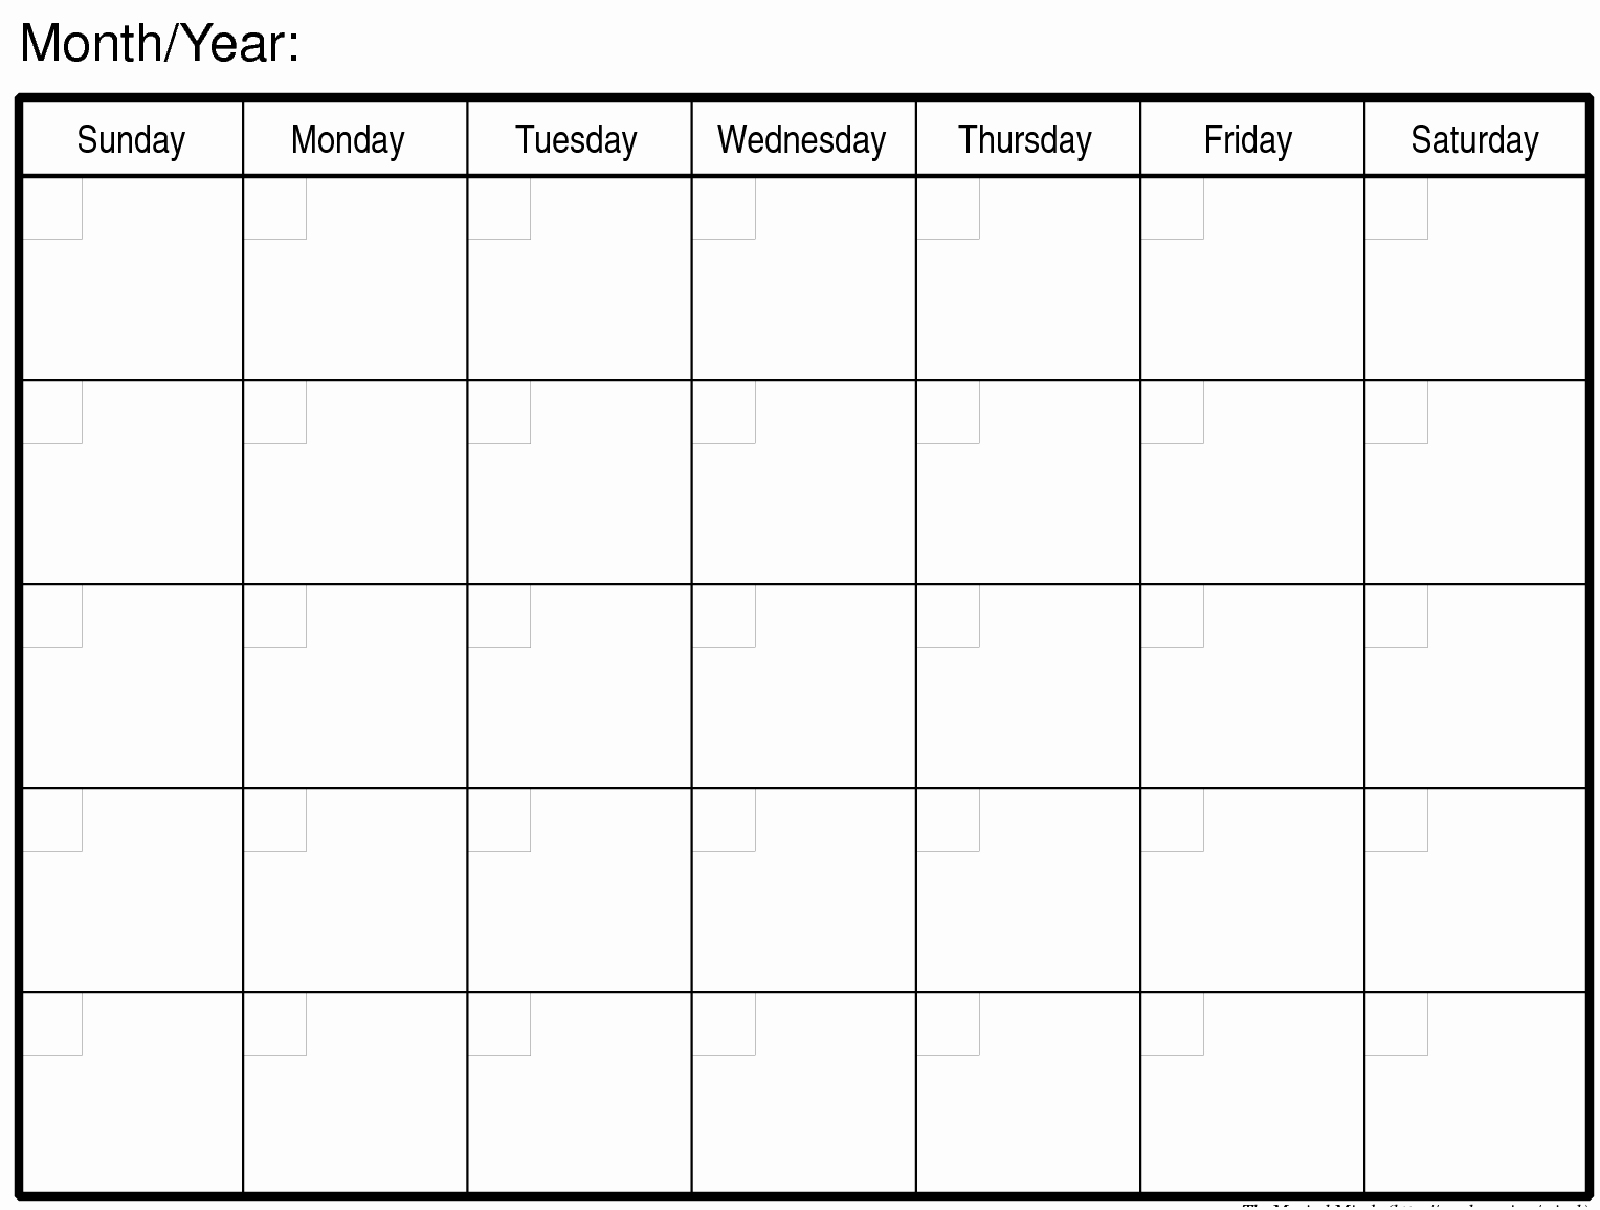 Blank Monthly Calendars To Print Free Calendar 2018 Printable regarding Blank Monthly Calendars To Print